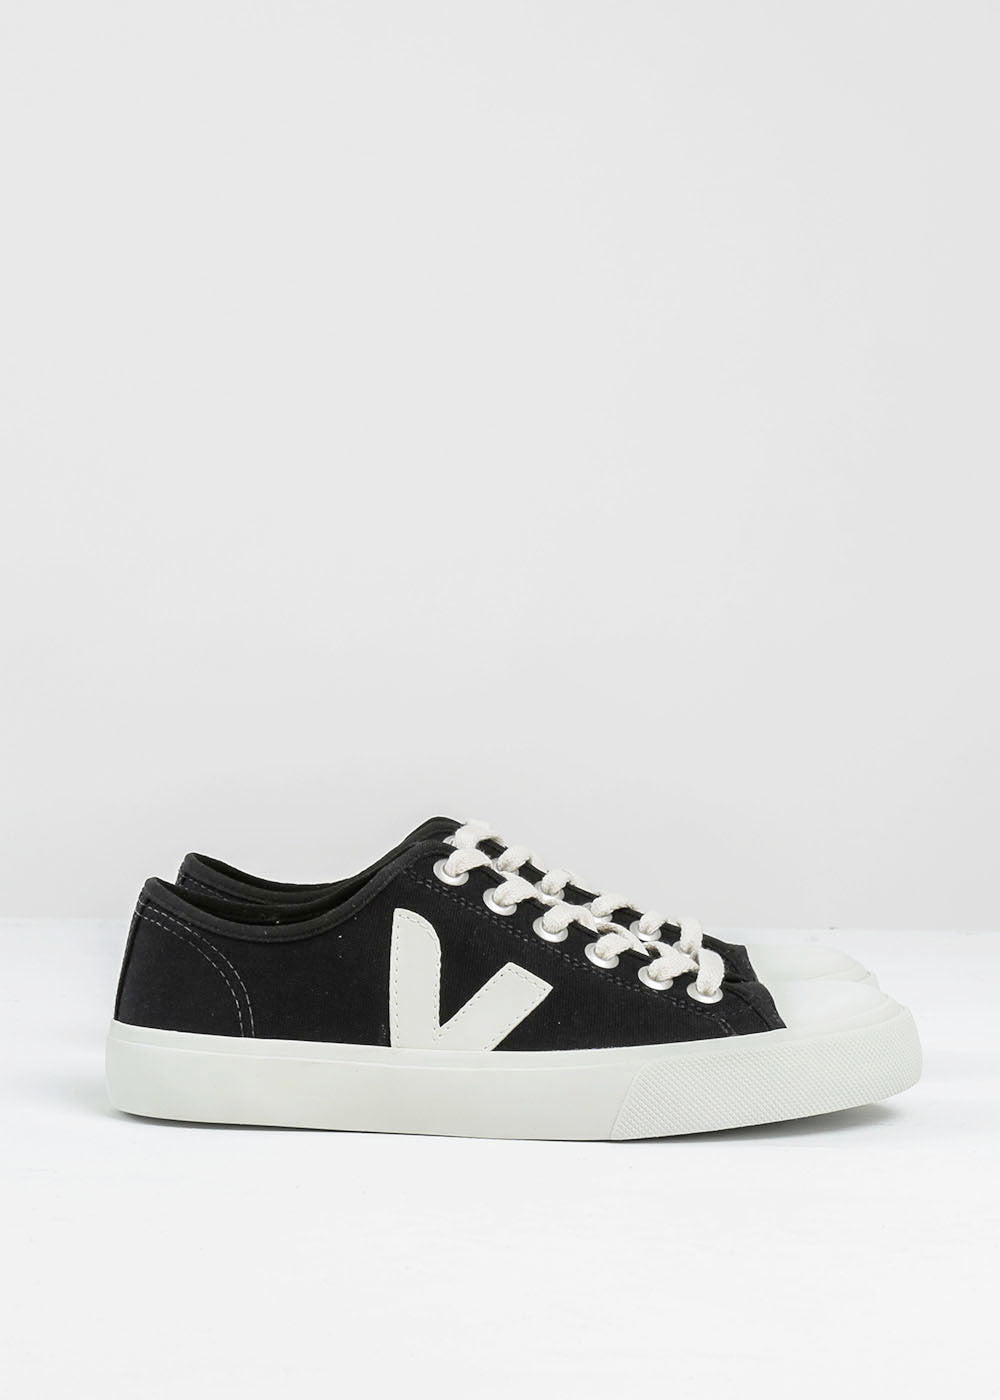 Veja Black Pierre Wata Canvas Sneaker - New Classics Studios